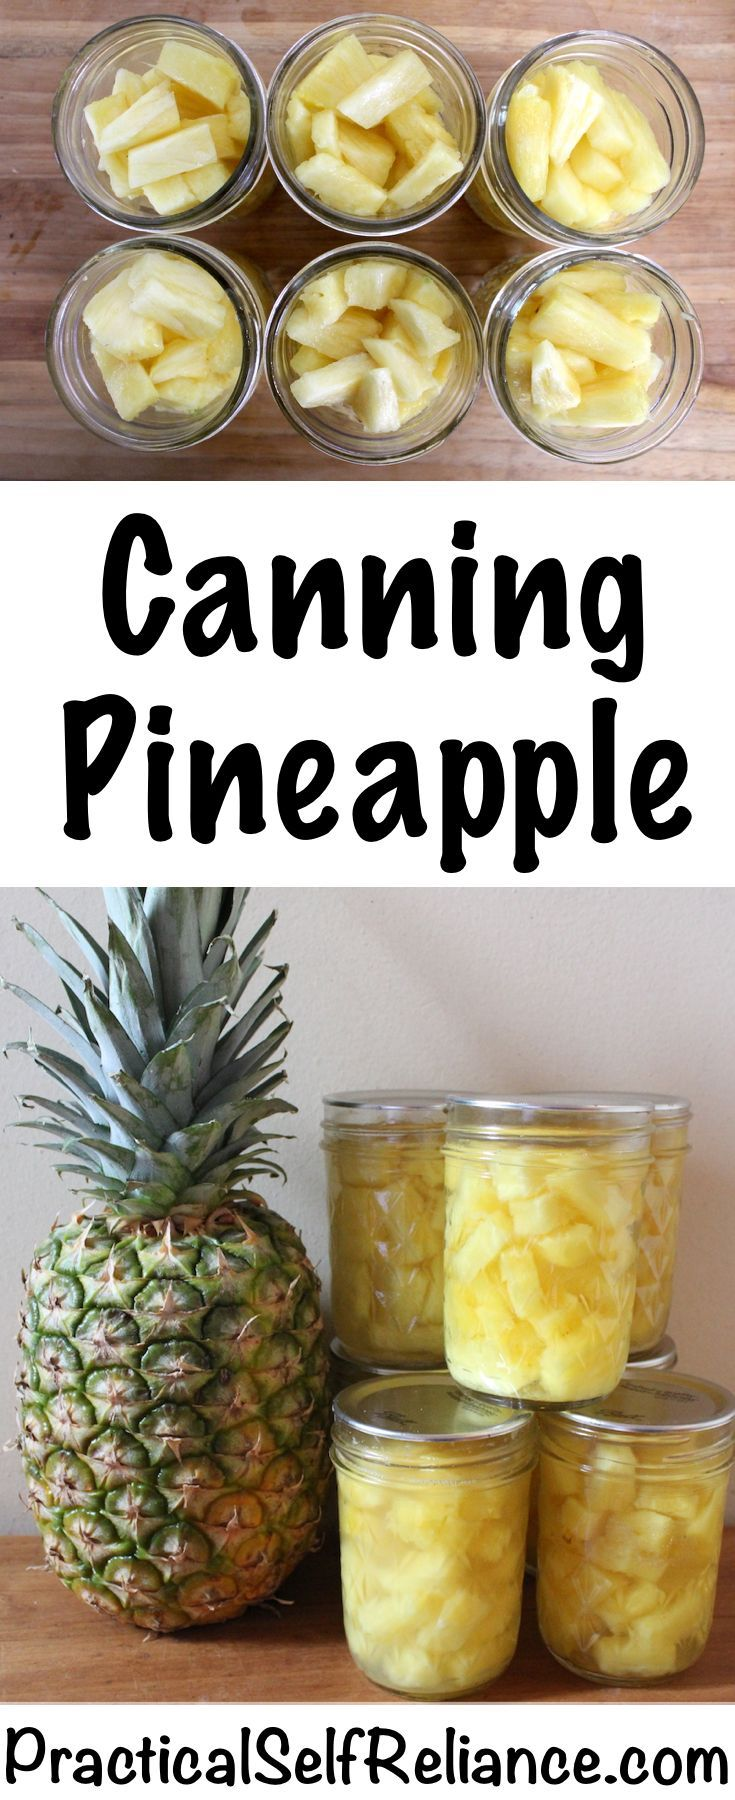 Canning Pineapple How to Can Pineapple ~ A quick guide to canning pineapple for long term preservation. Homemade canned pineapple tastes much better than store bought, and it's a great way to preserve sale pineapples for later use.